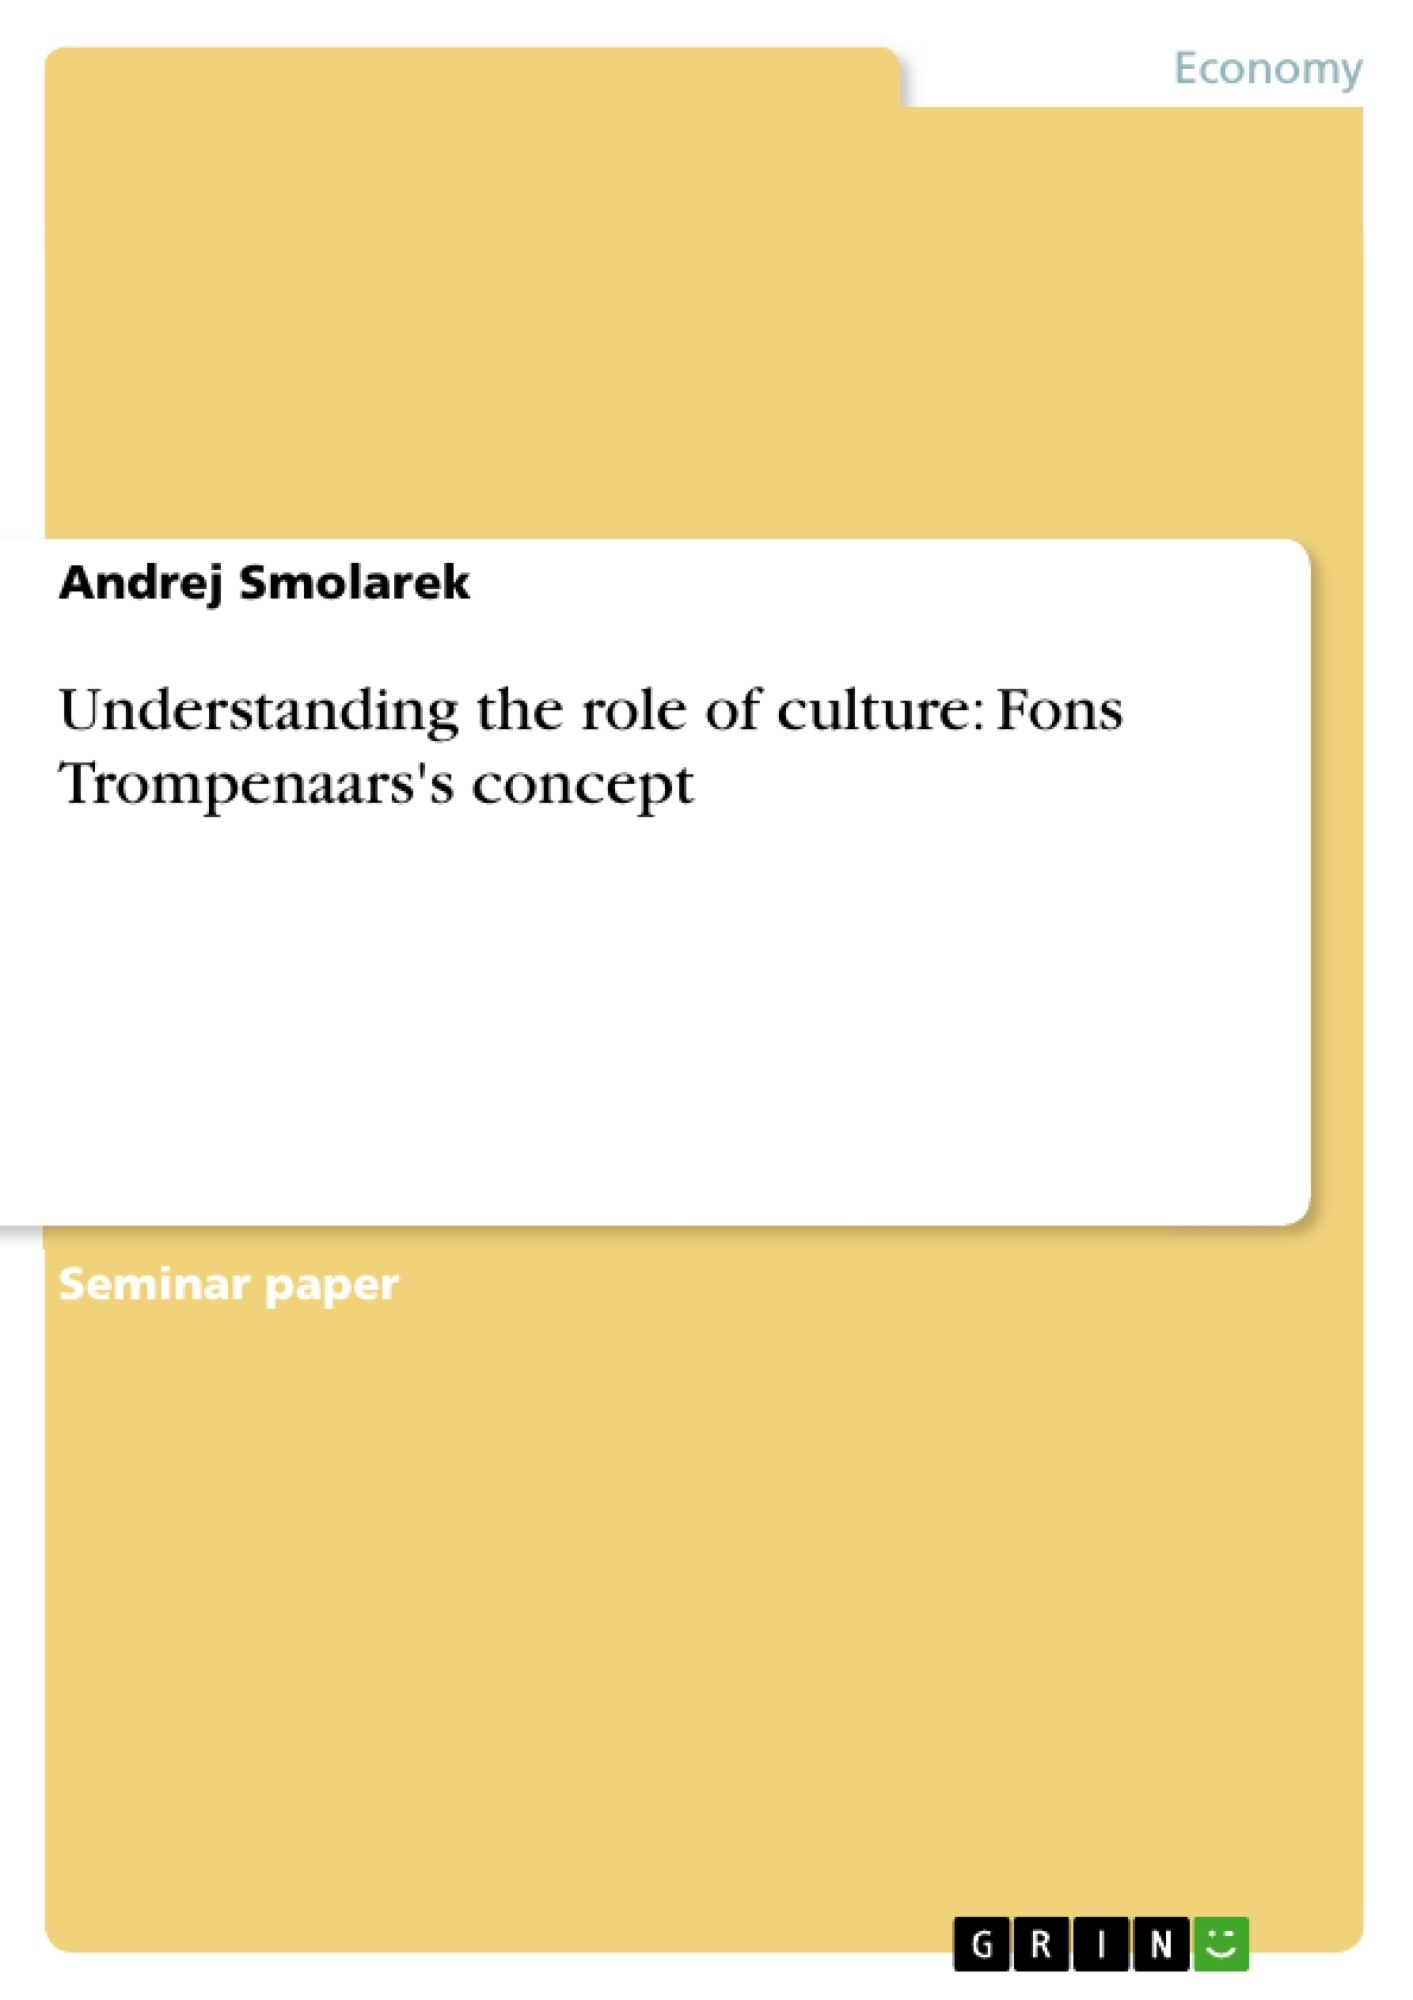 Title: Understanding the role of culture: Fons Trompenaars's concept